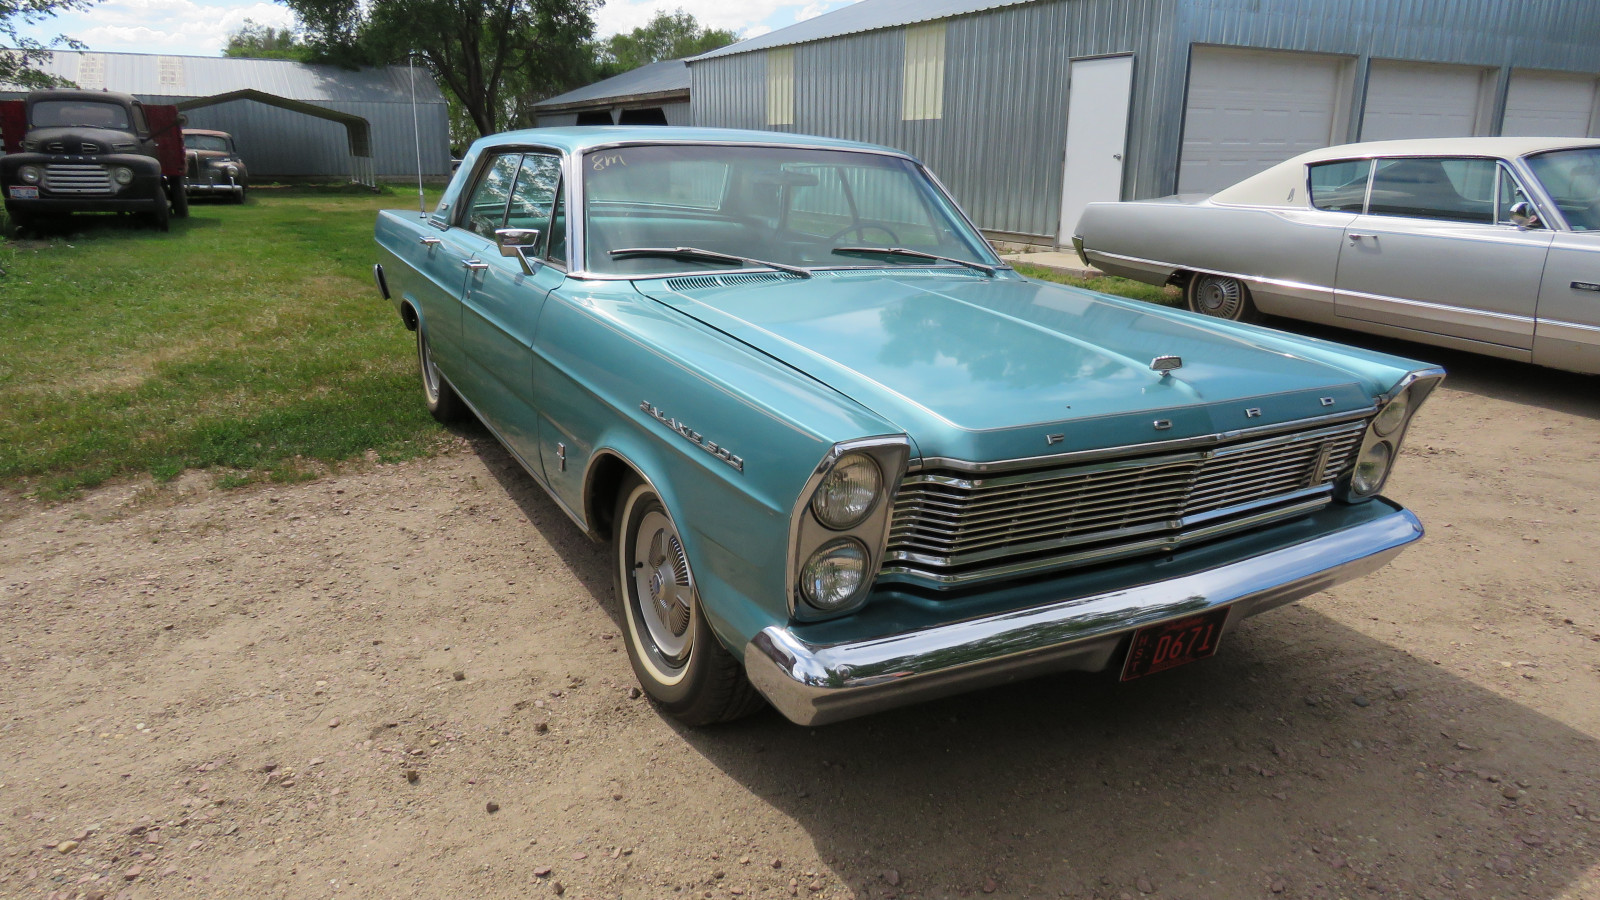 1965 Ford Galaxie 500 4dr HT - Image 1